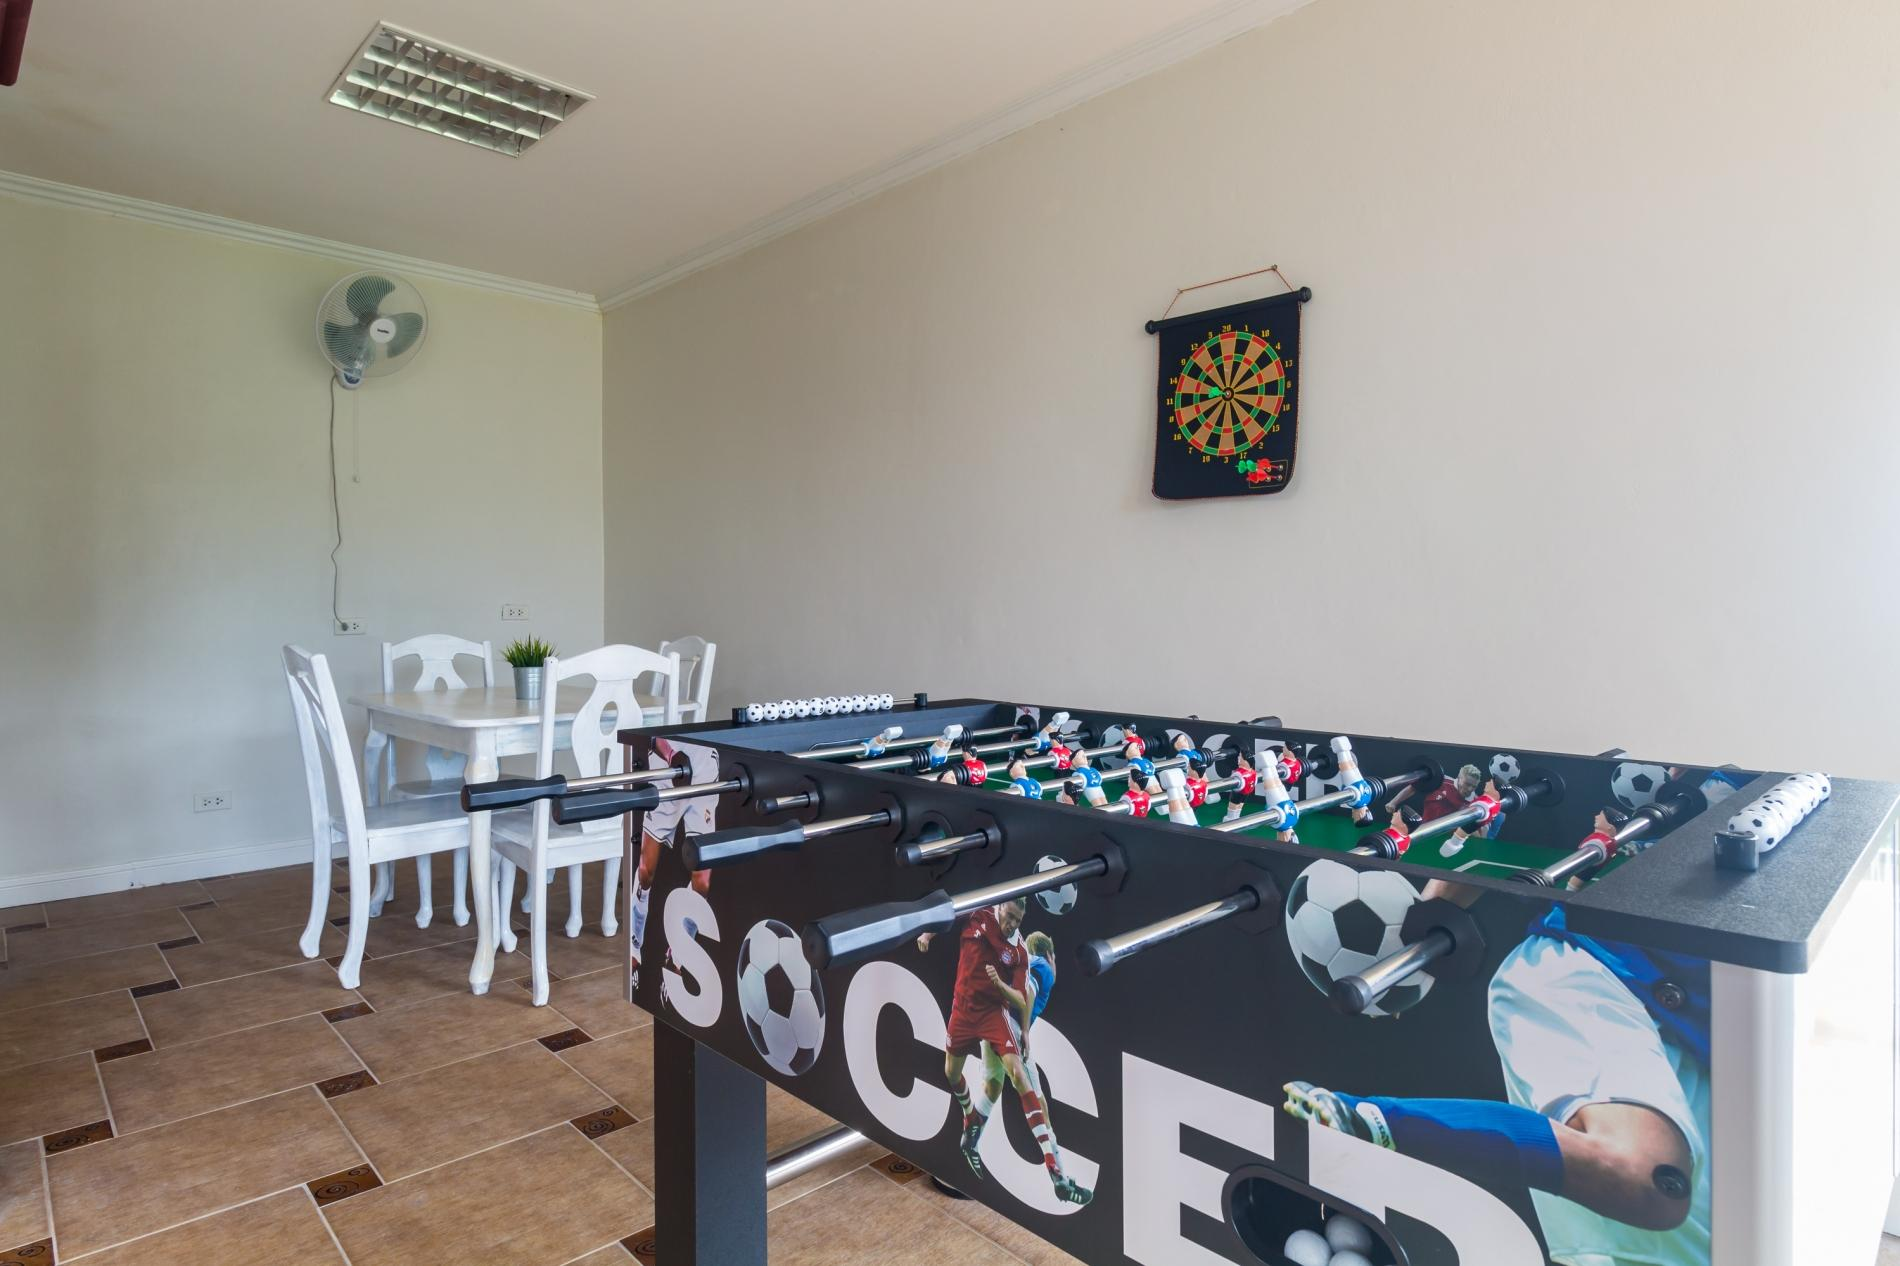 Apartment 50pee - Seaview pool villa in Patong  boxing bag  foosball table  darts and fun  photo 20318504